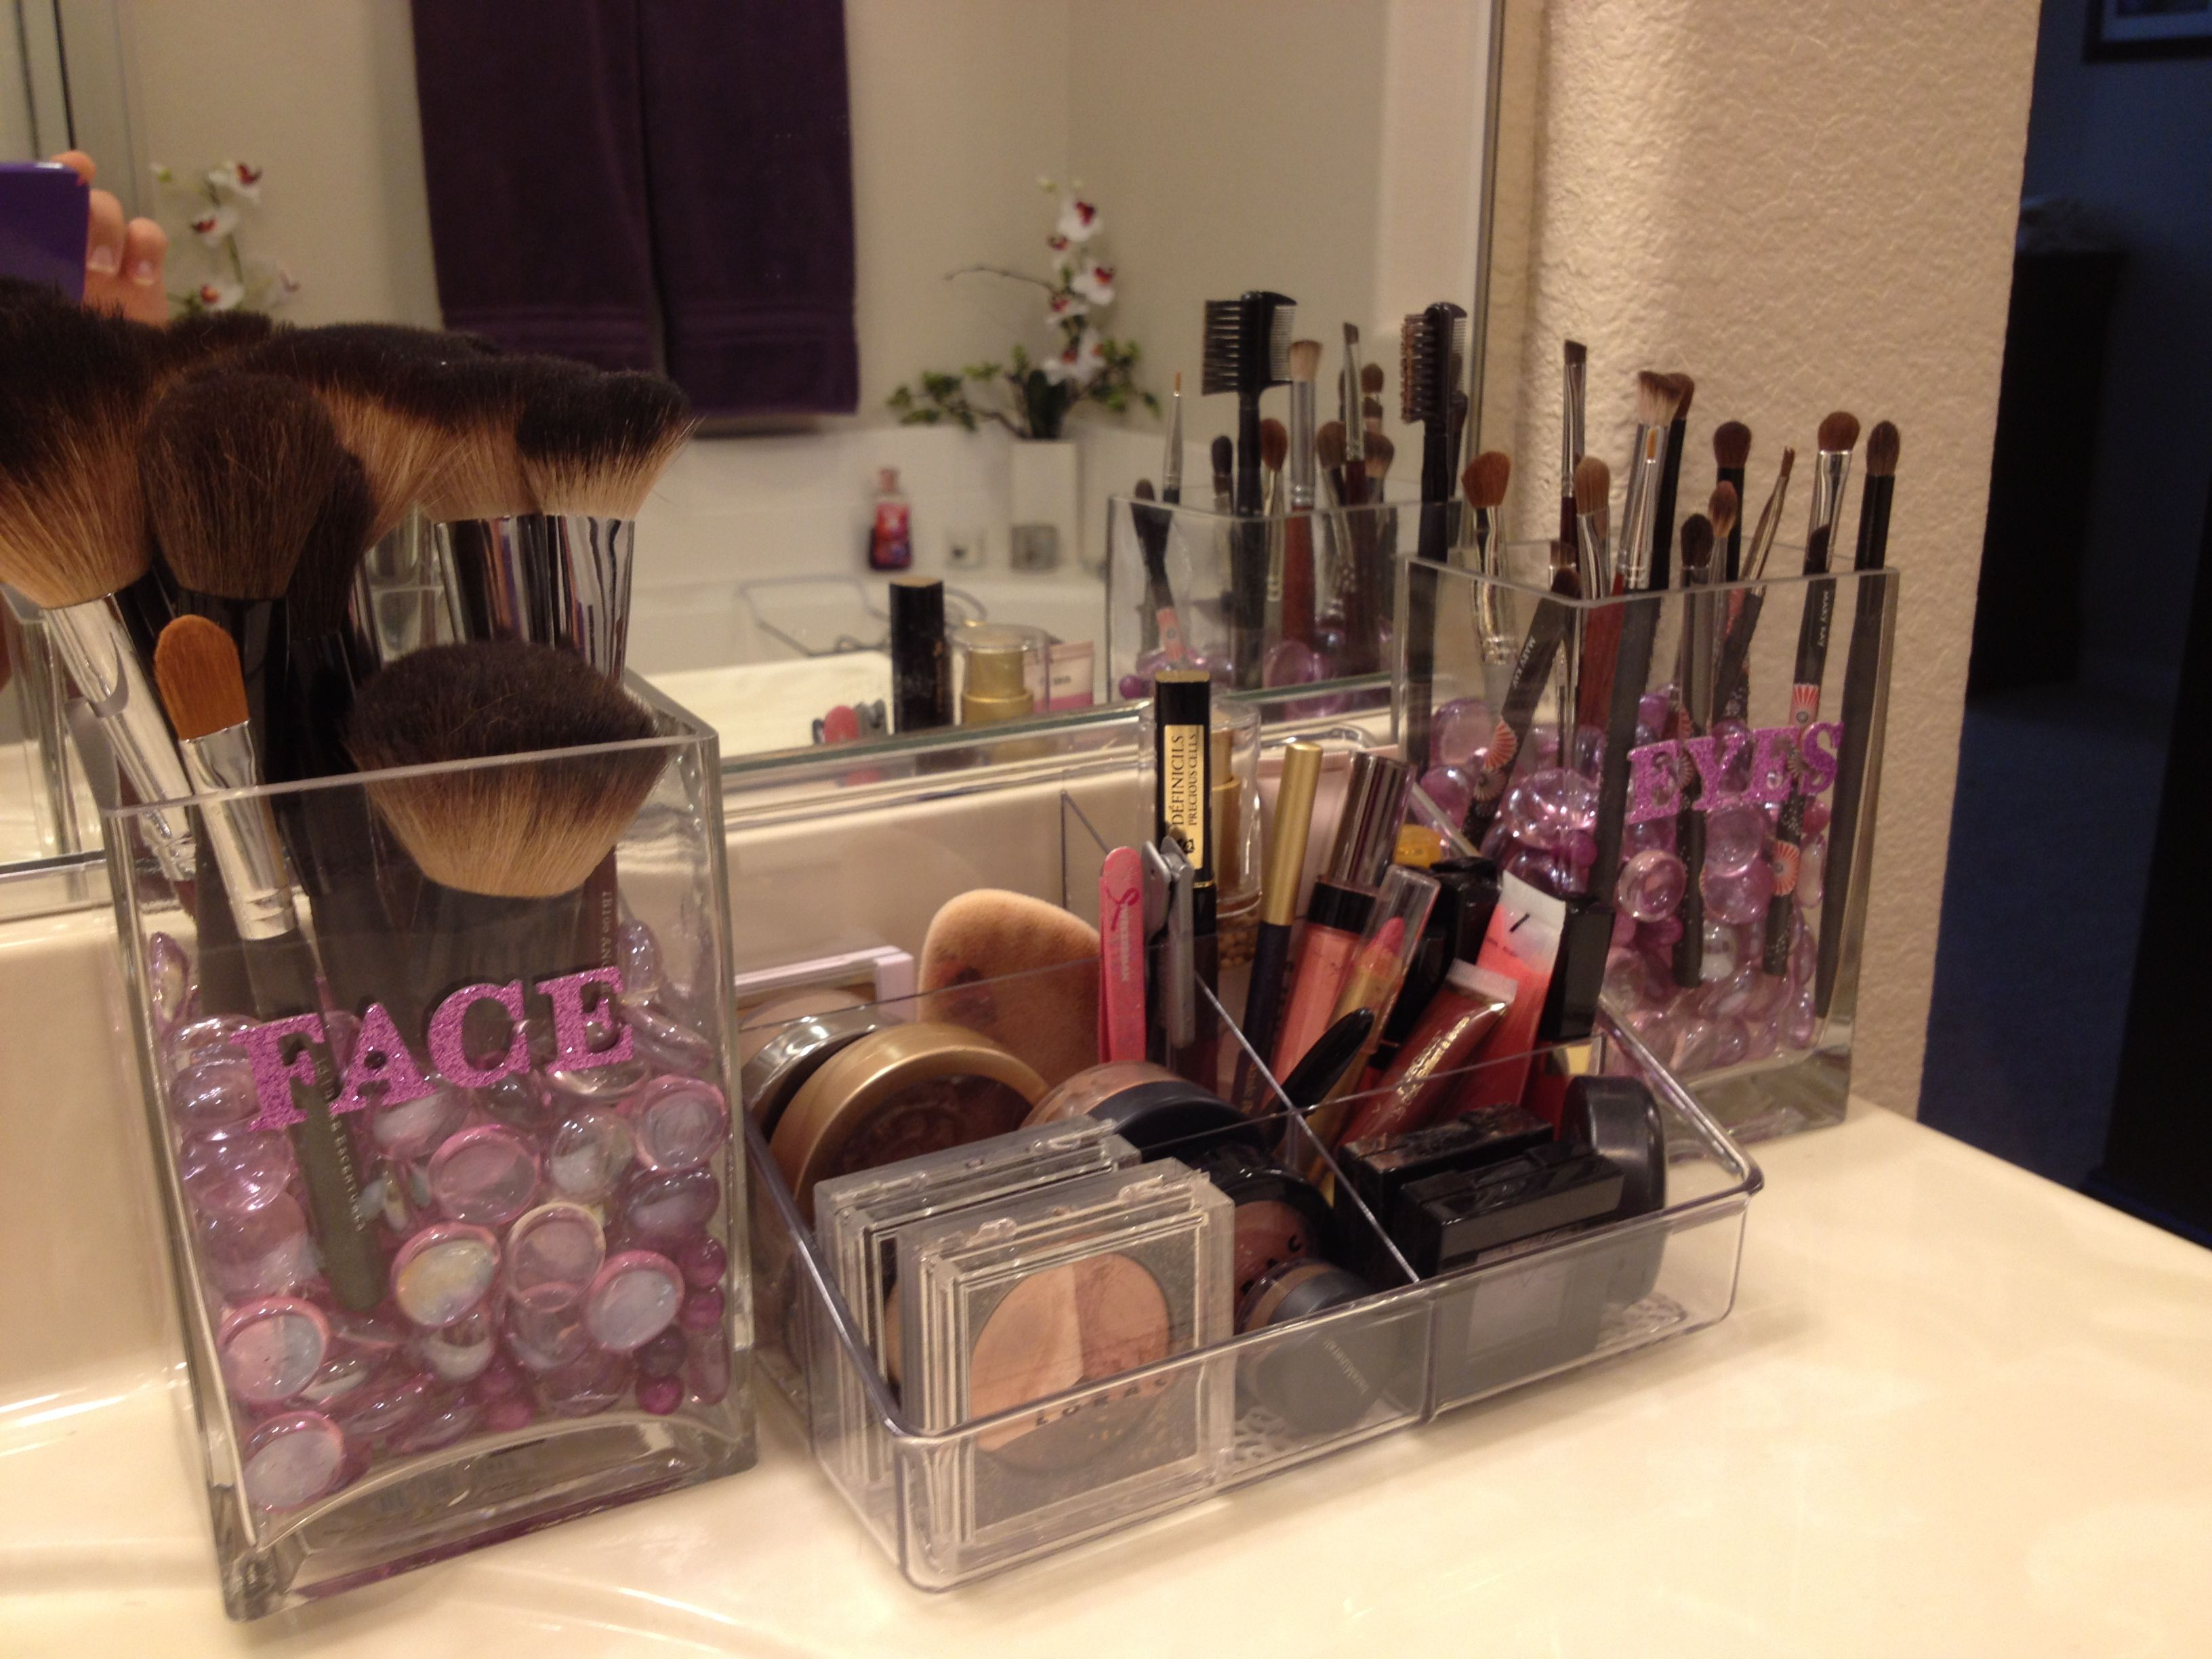 My New Make Up Storage Thanks To Other Great Pins I Got The